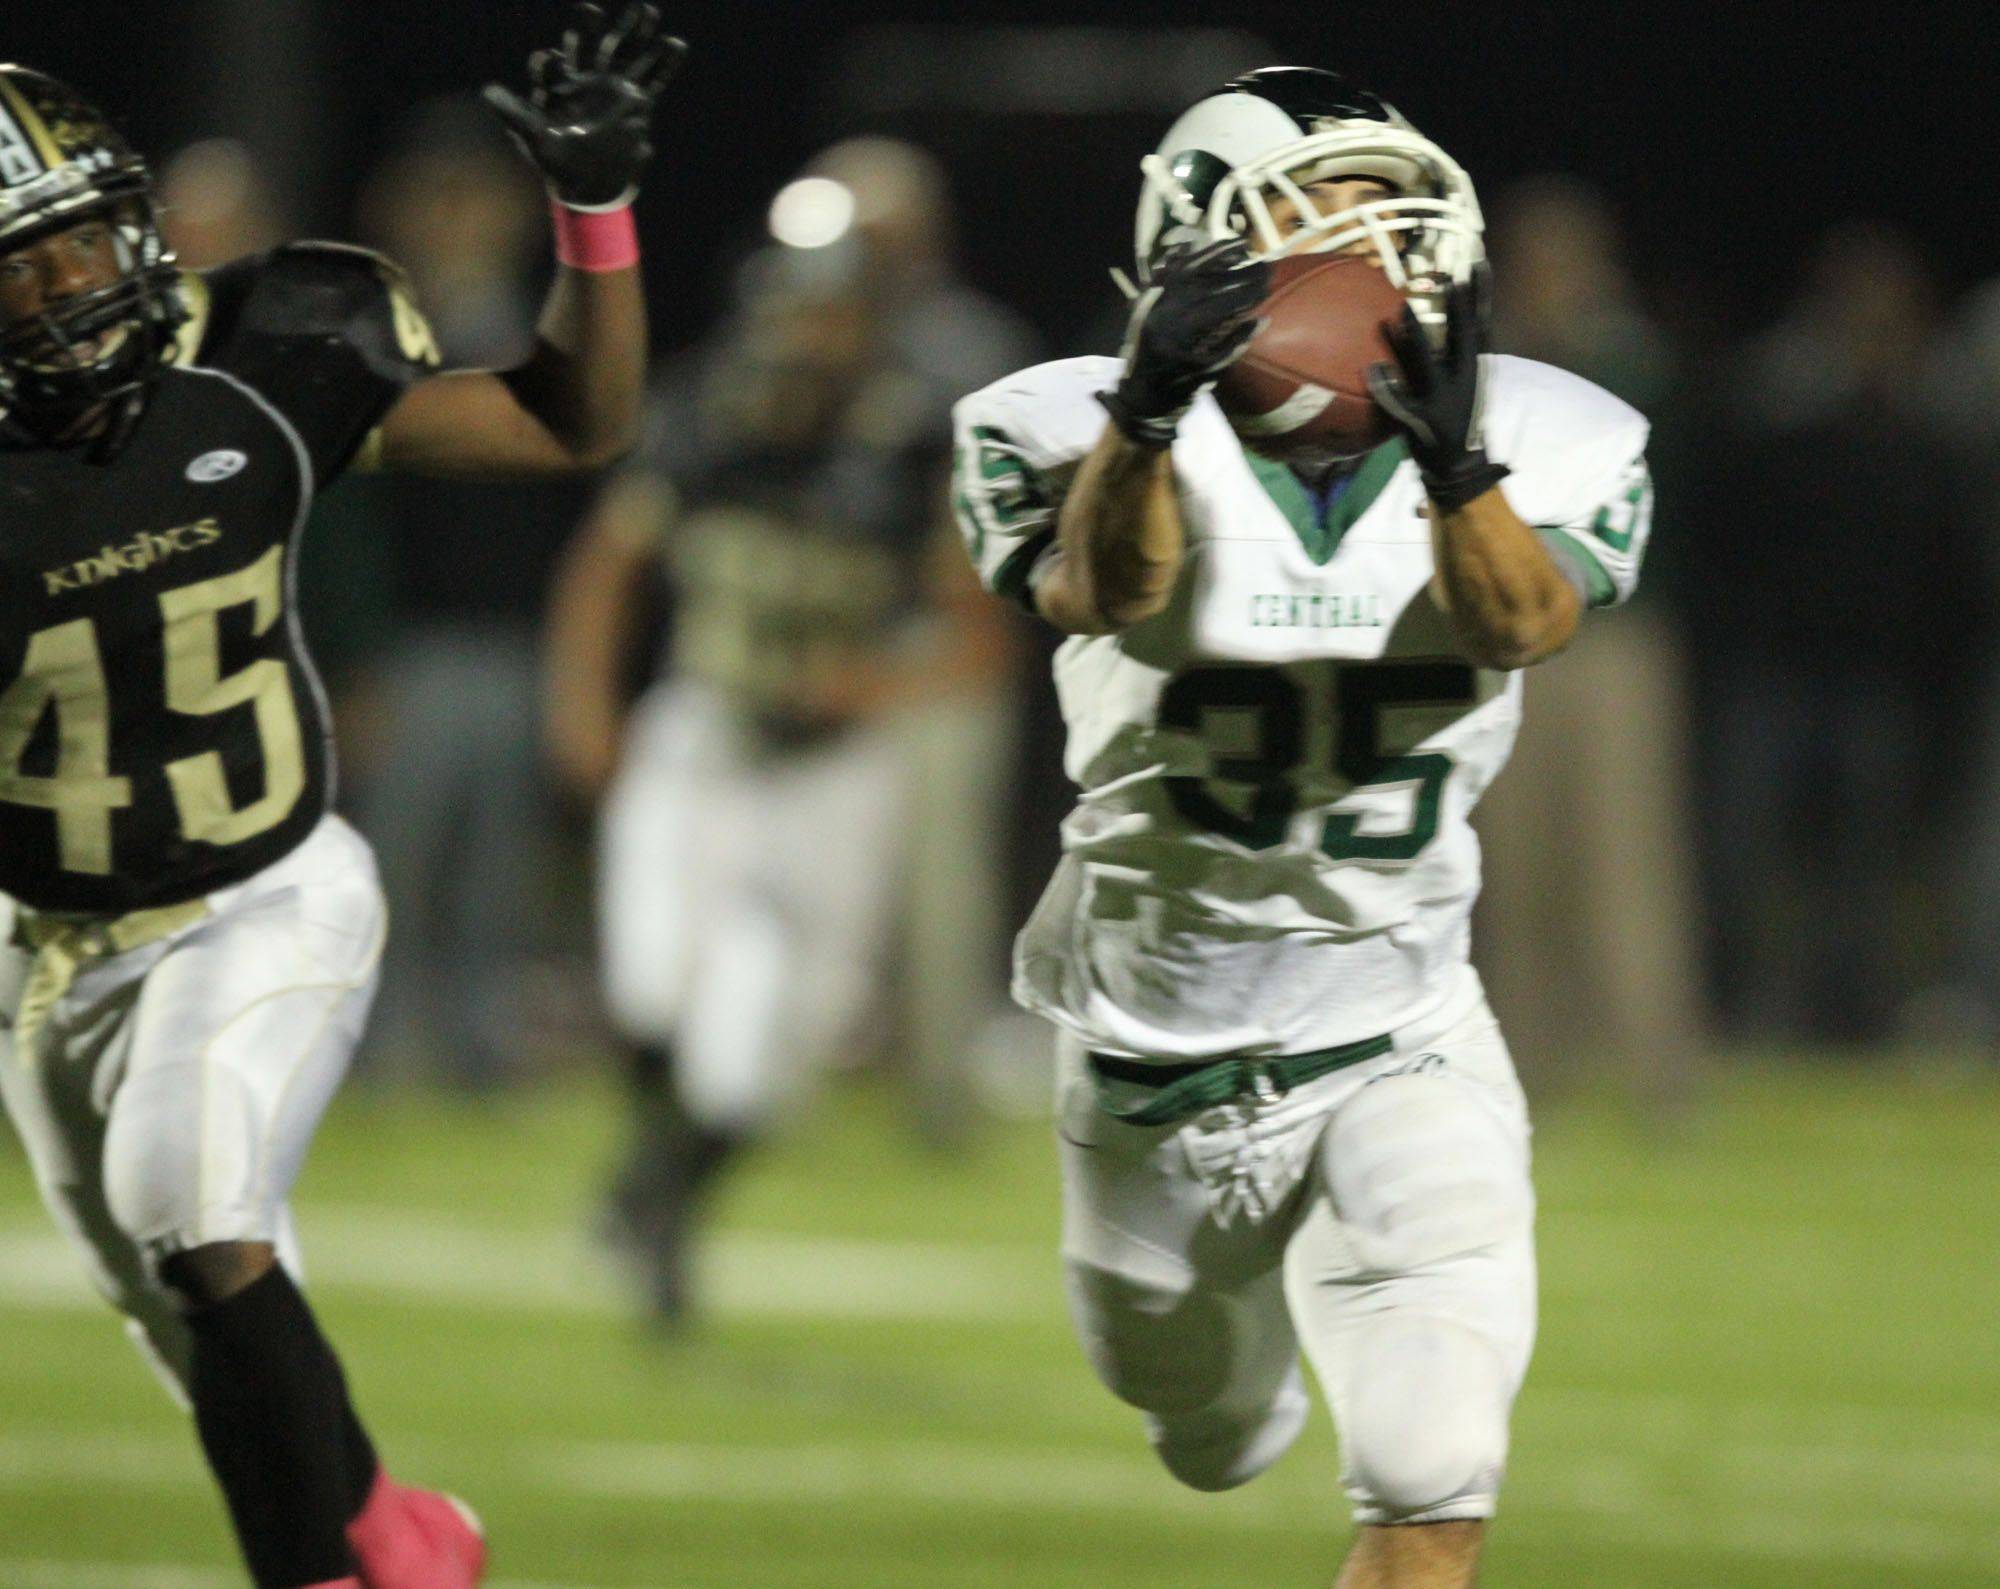 Week 8 - Images from the Grayslake Central at Grayslake North football game Friday, October 15.